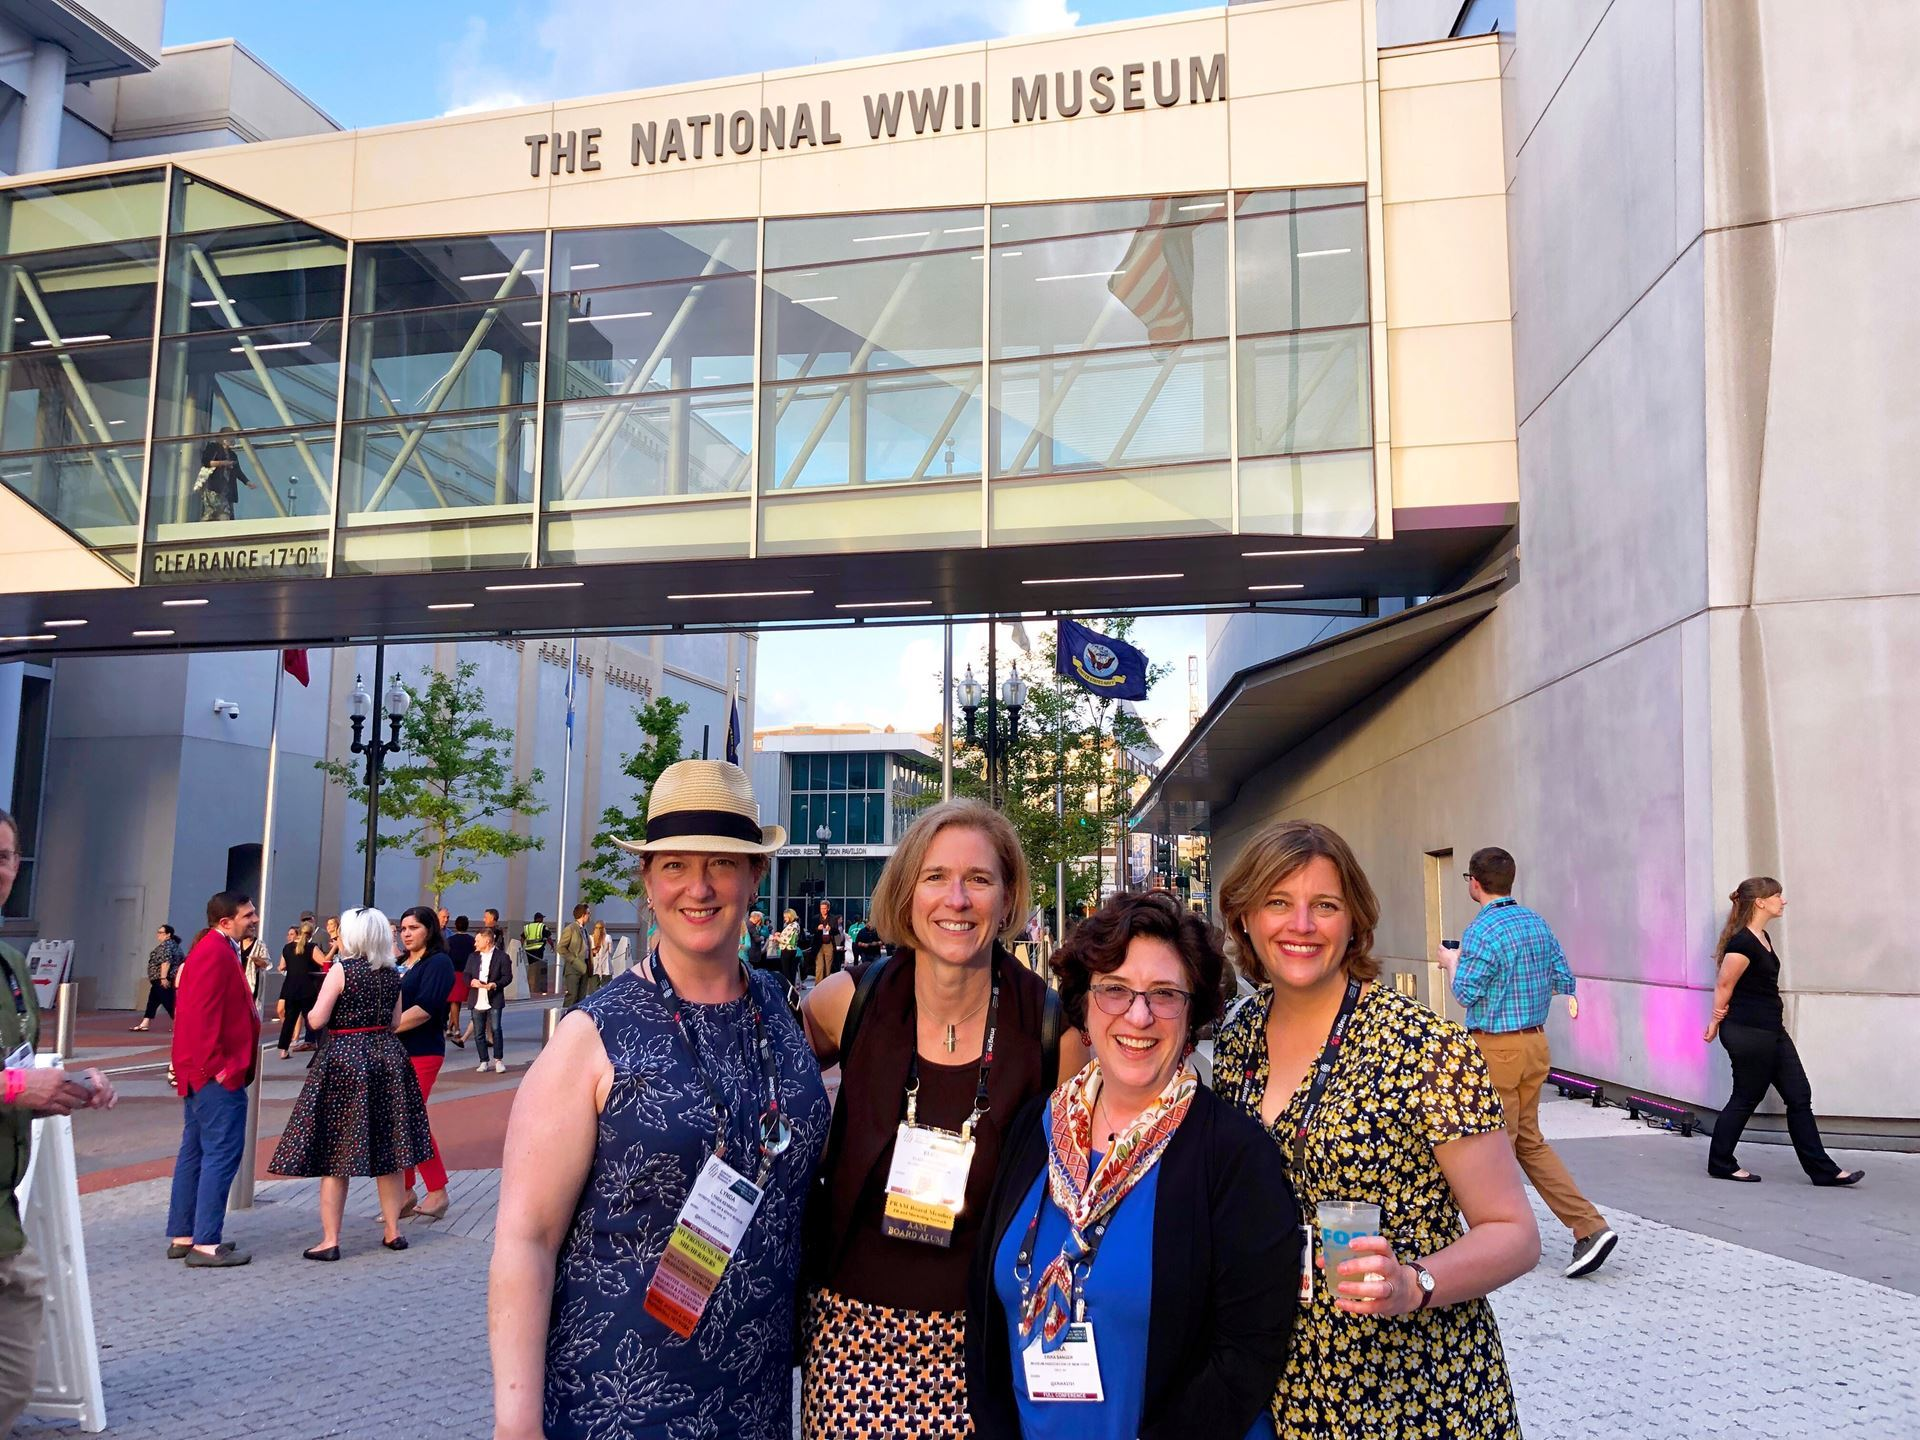 NYS museums meeting up at #AAM2019! Pictured L-R Hillarie Olson (RMSC), Erika Sanger (MANY), Eliza Koslowski (George Eastman Museum), and Lynda Kennedy (The Intrepid Sear, Air & Space Museum)